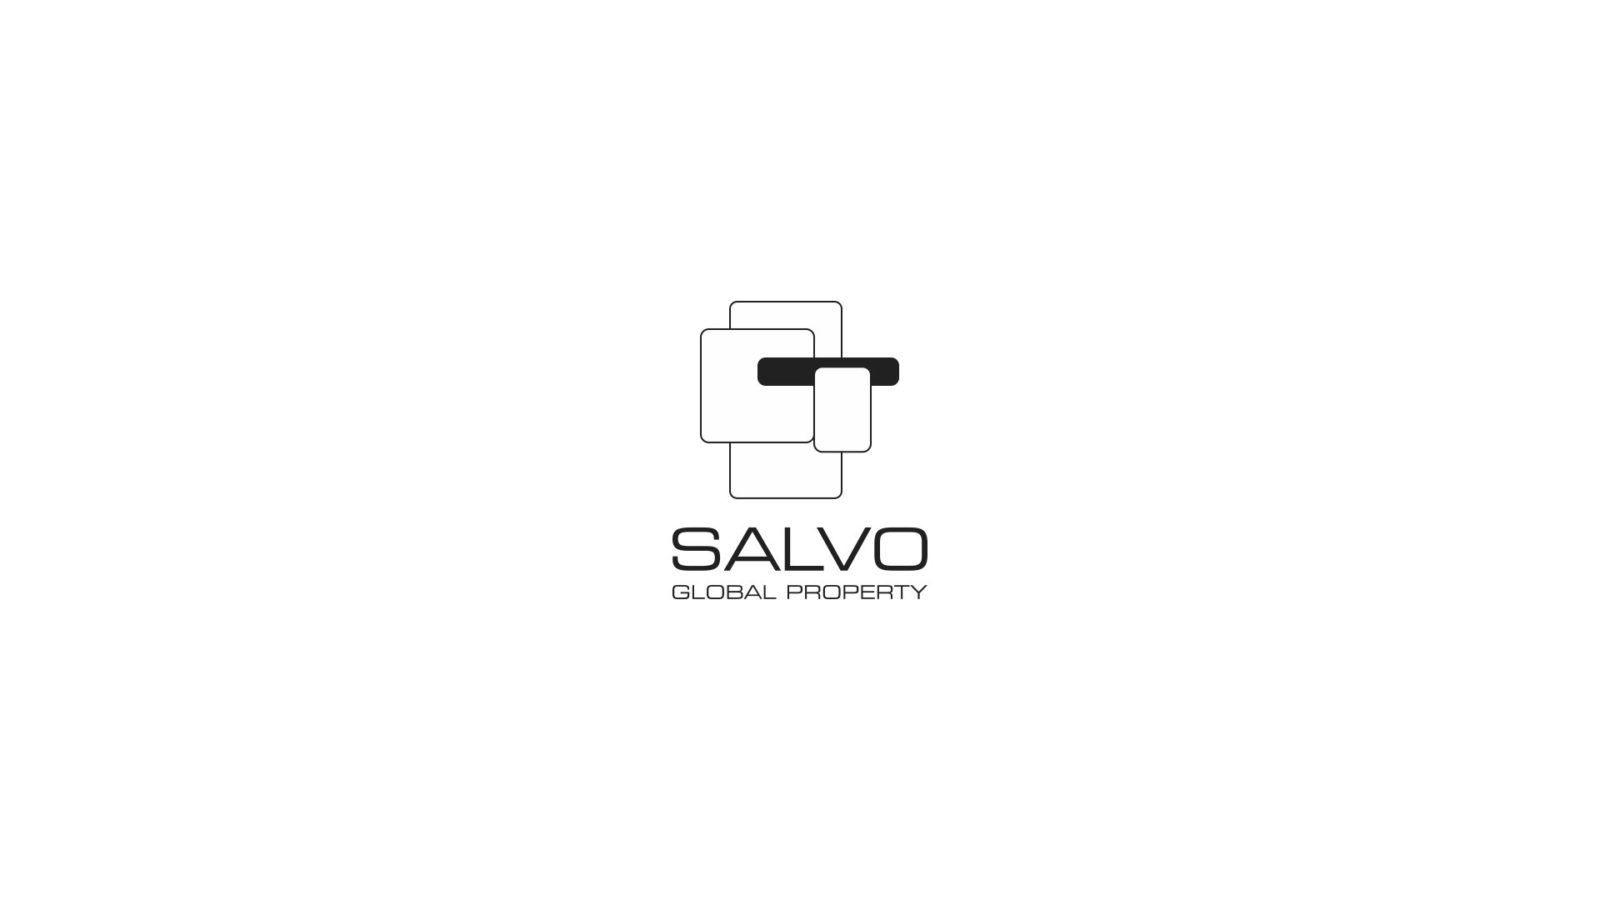 salvo global property inmobiliaria y gestion - Identidad gráfica | SALVO GLOBAL PROPERTY